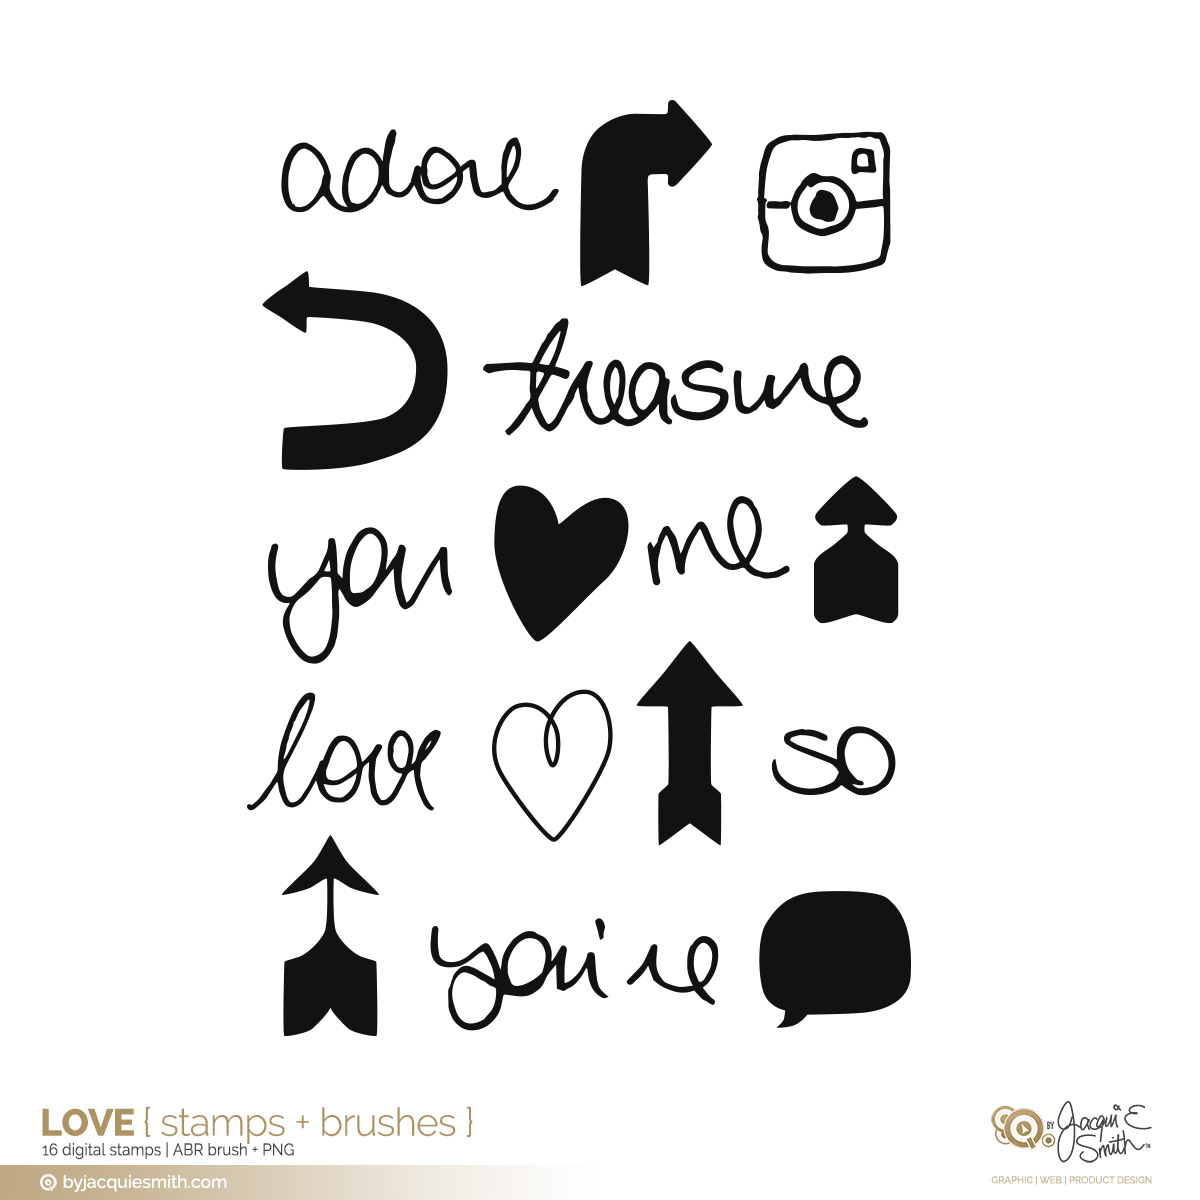 Love digital stamps + brushes at byjacquiesmith.com